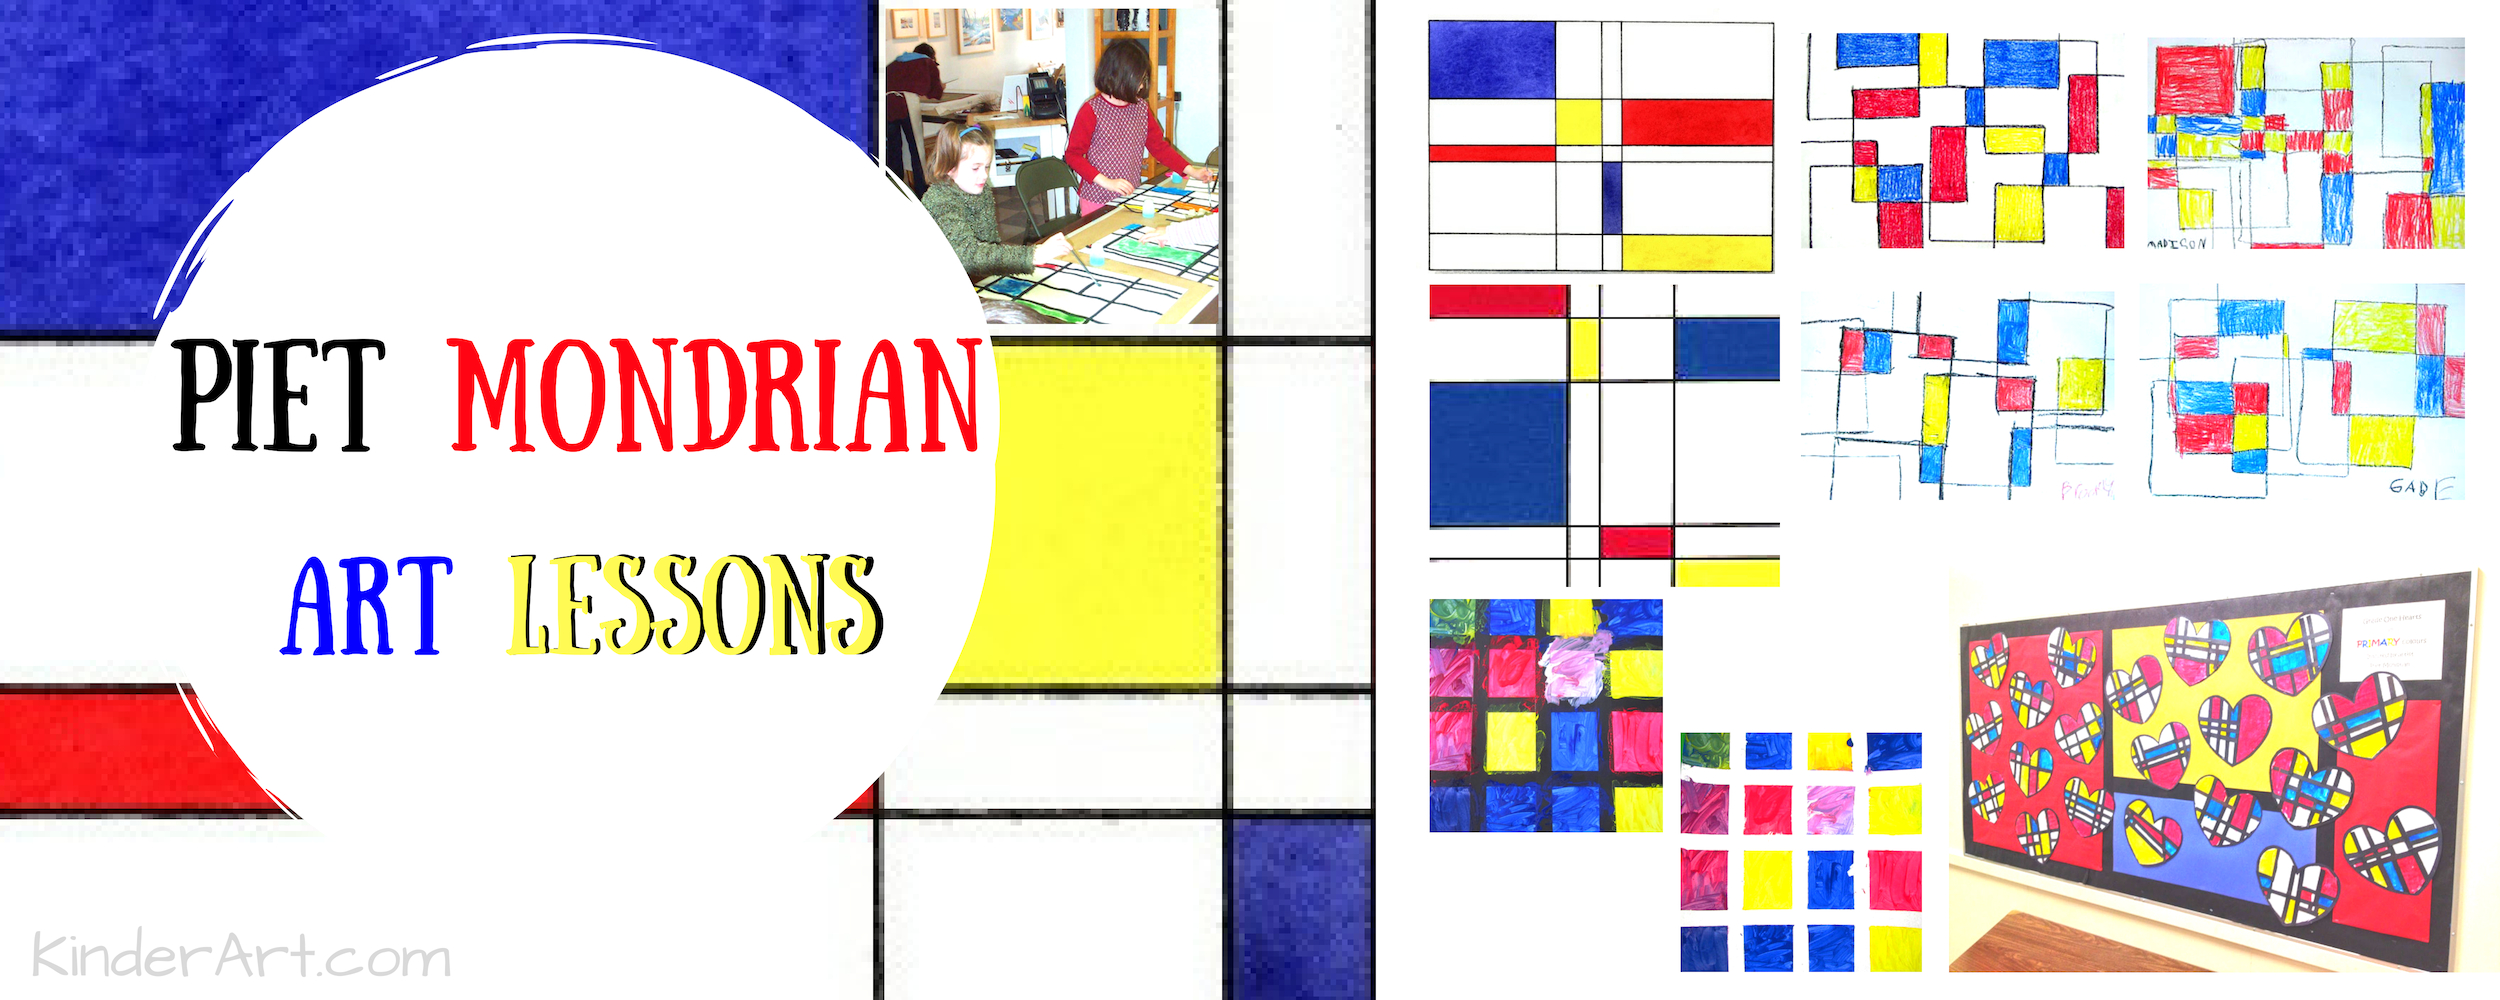 Mondrian art lessons for elementary and middle school students.